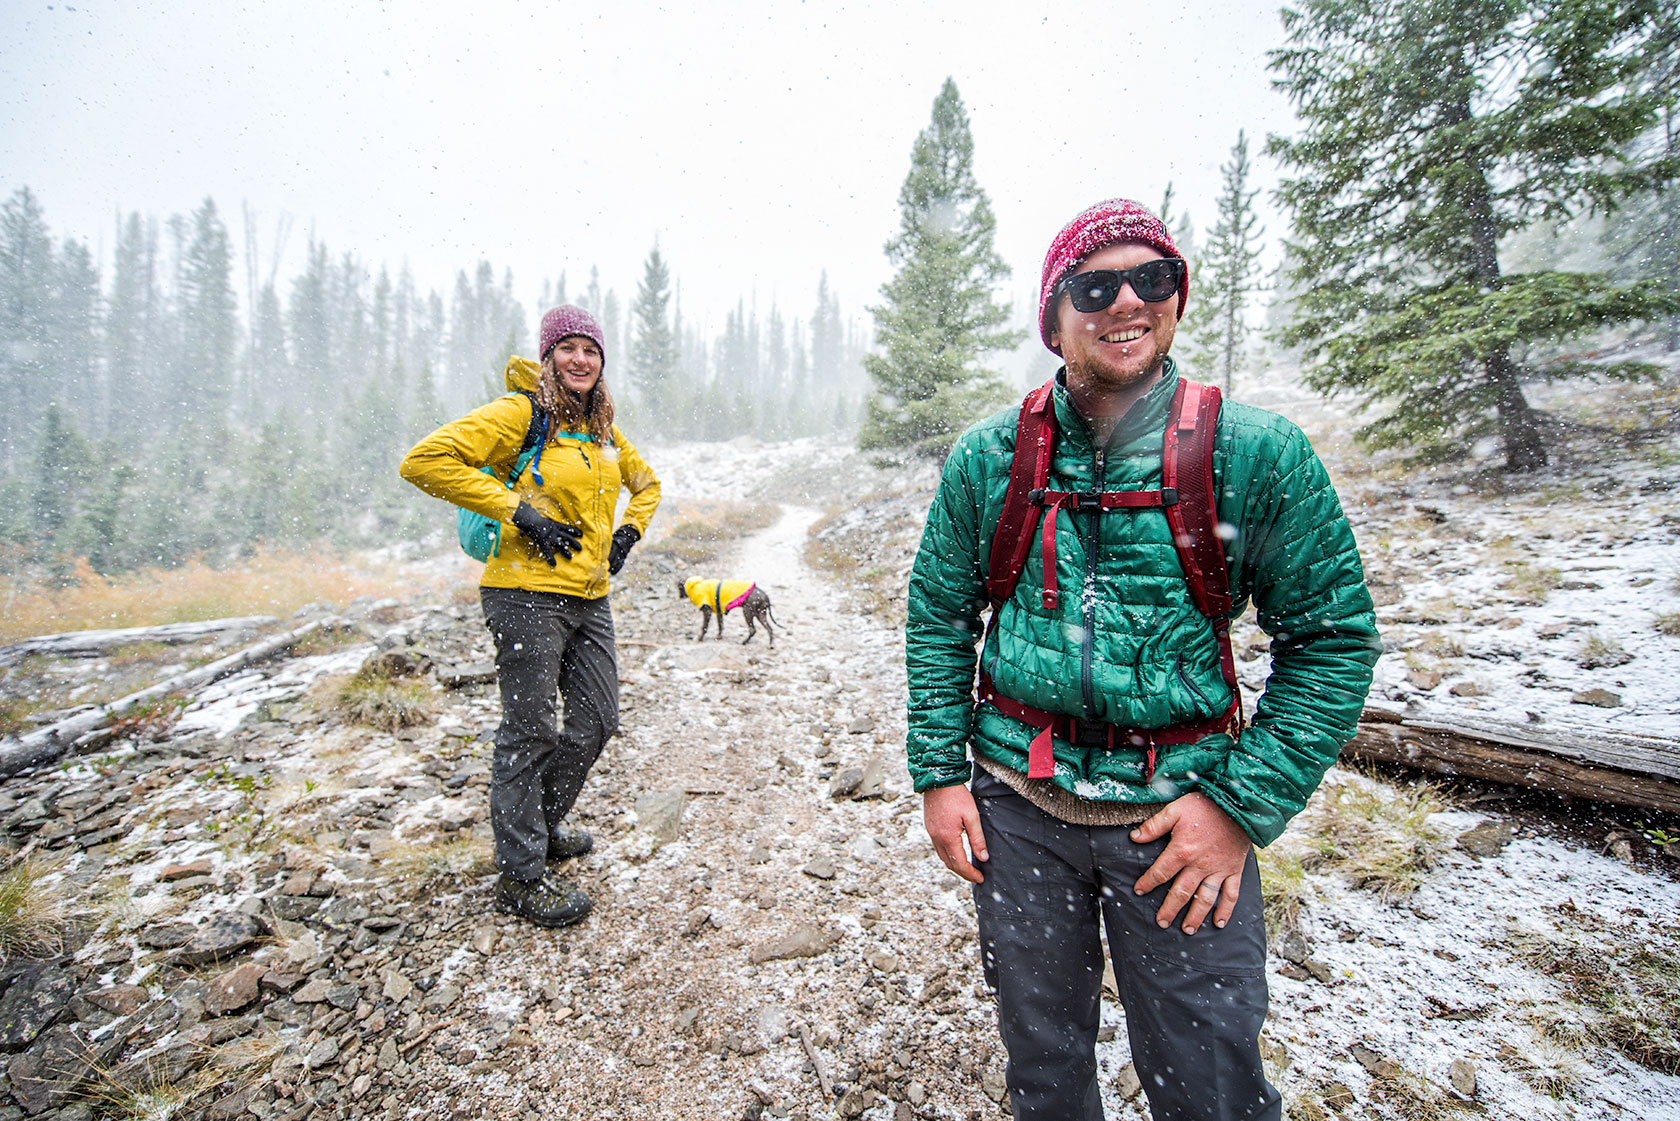 austin-trigg-patagonia-sawtooth-hiking-snow-stanley-lake-advenure-wilderness-forest-idaho-outside-lifestyle-day-fall-weather-mountains-weather.jpg